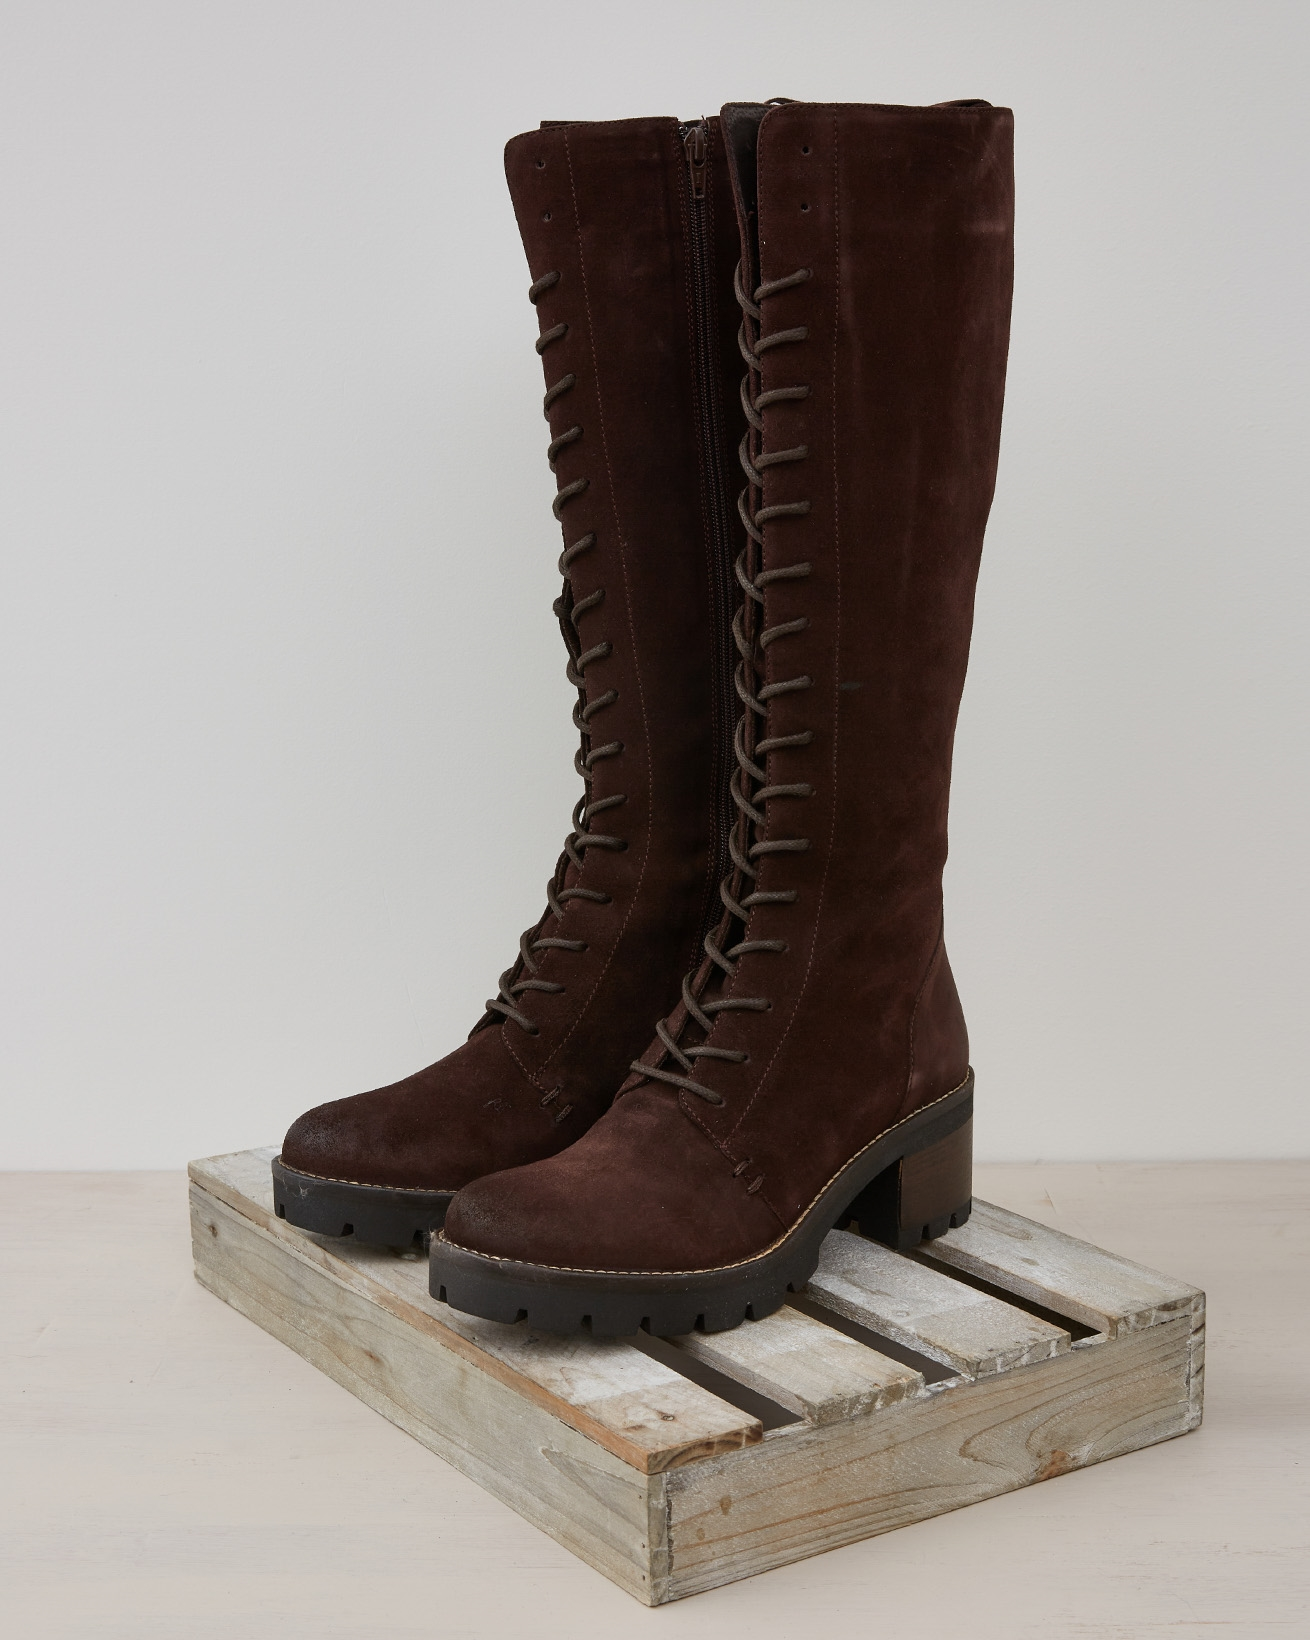 WILDERNESS KNEE HIGH BOOT - Tanners Brown - Size 39 - 2550